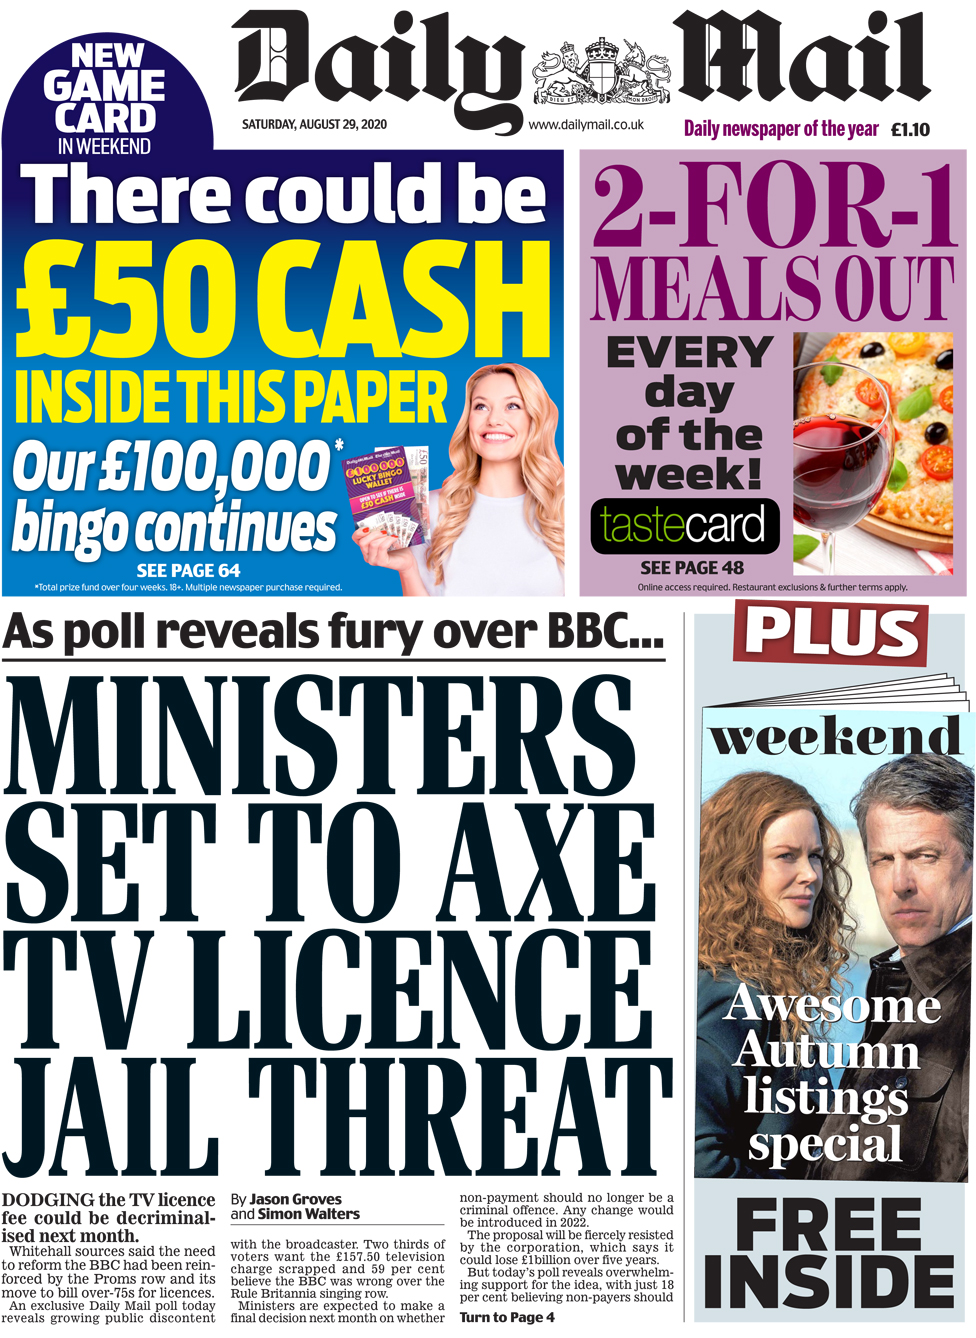 The Daily Mail front page 29 August 2020